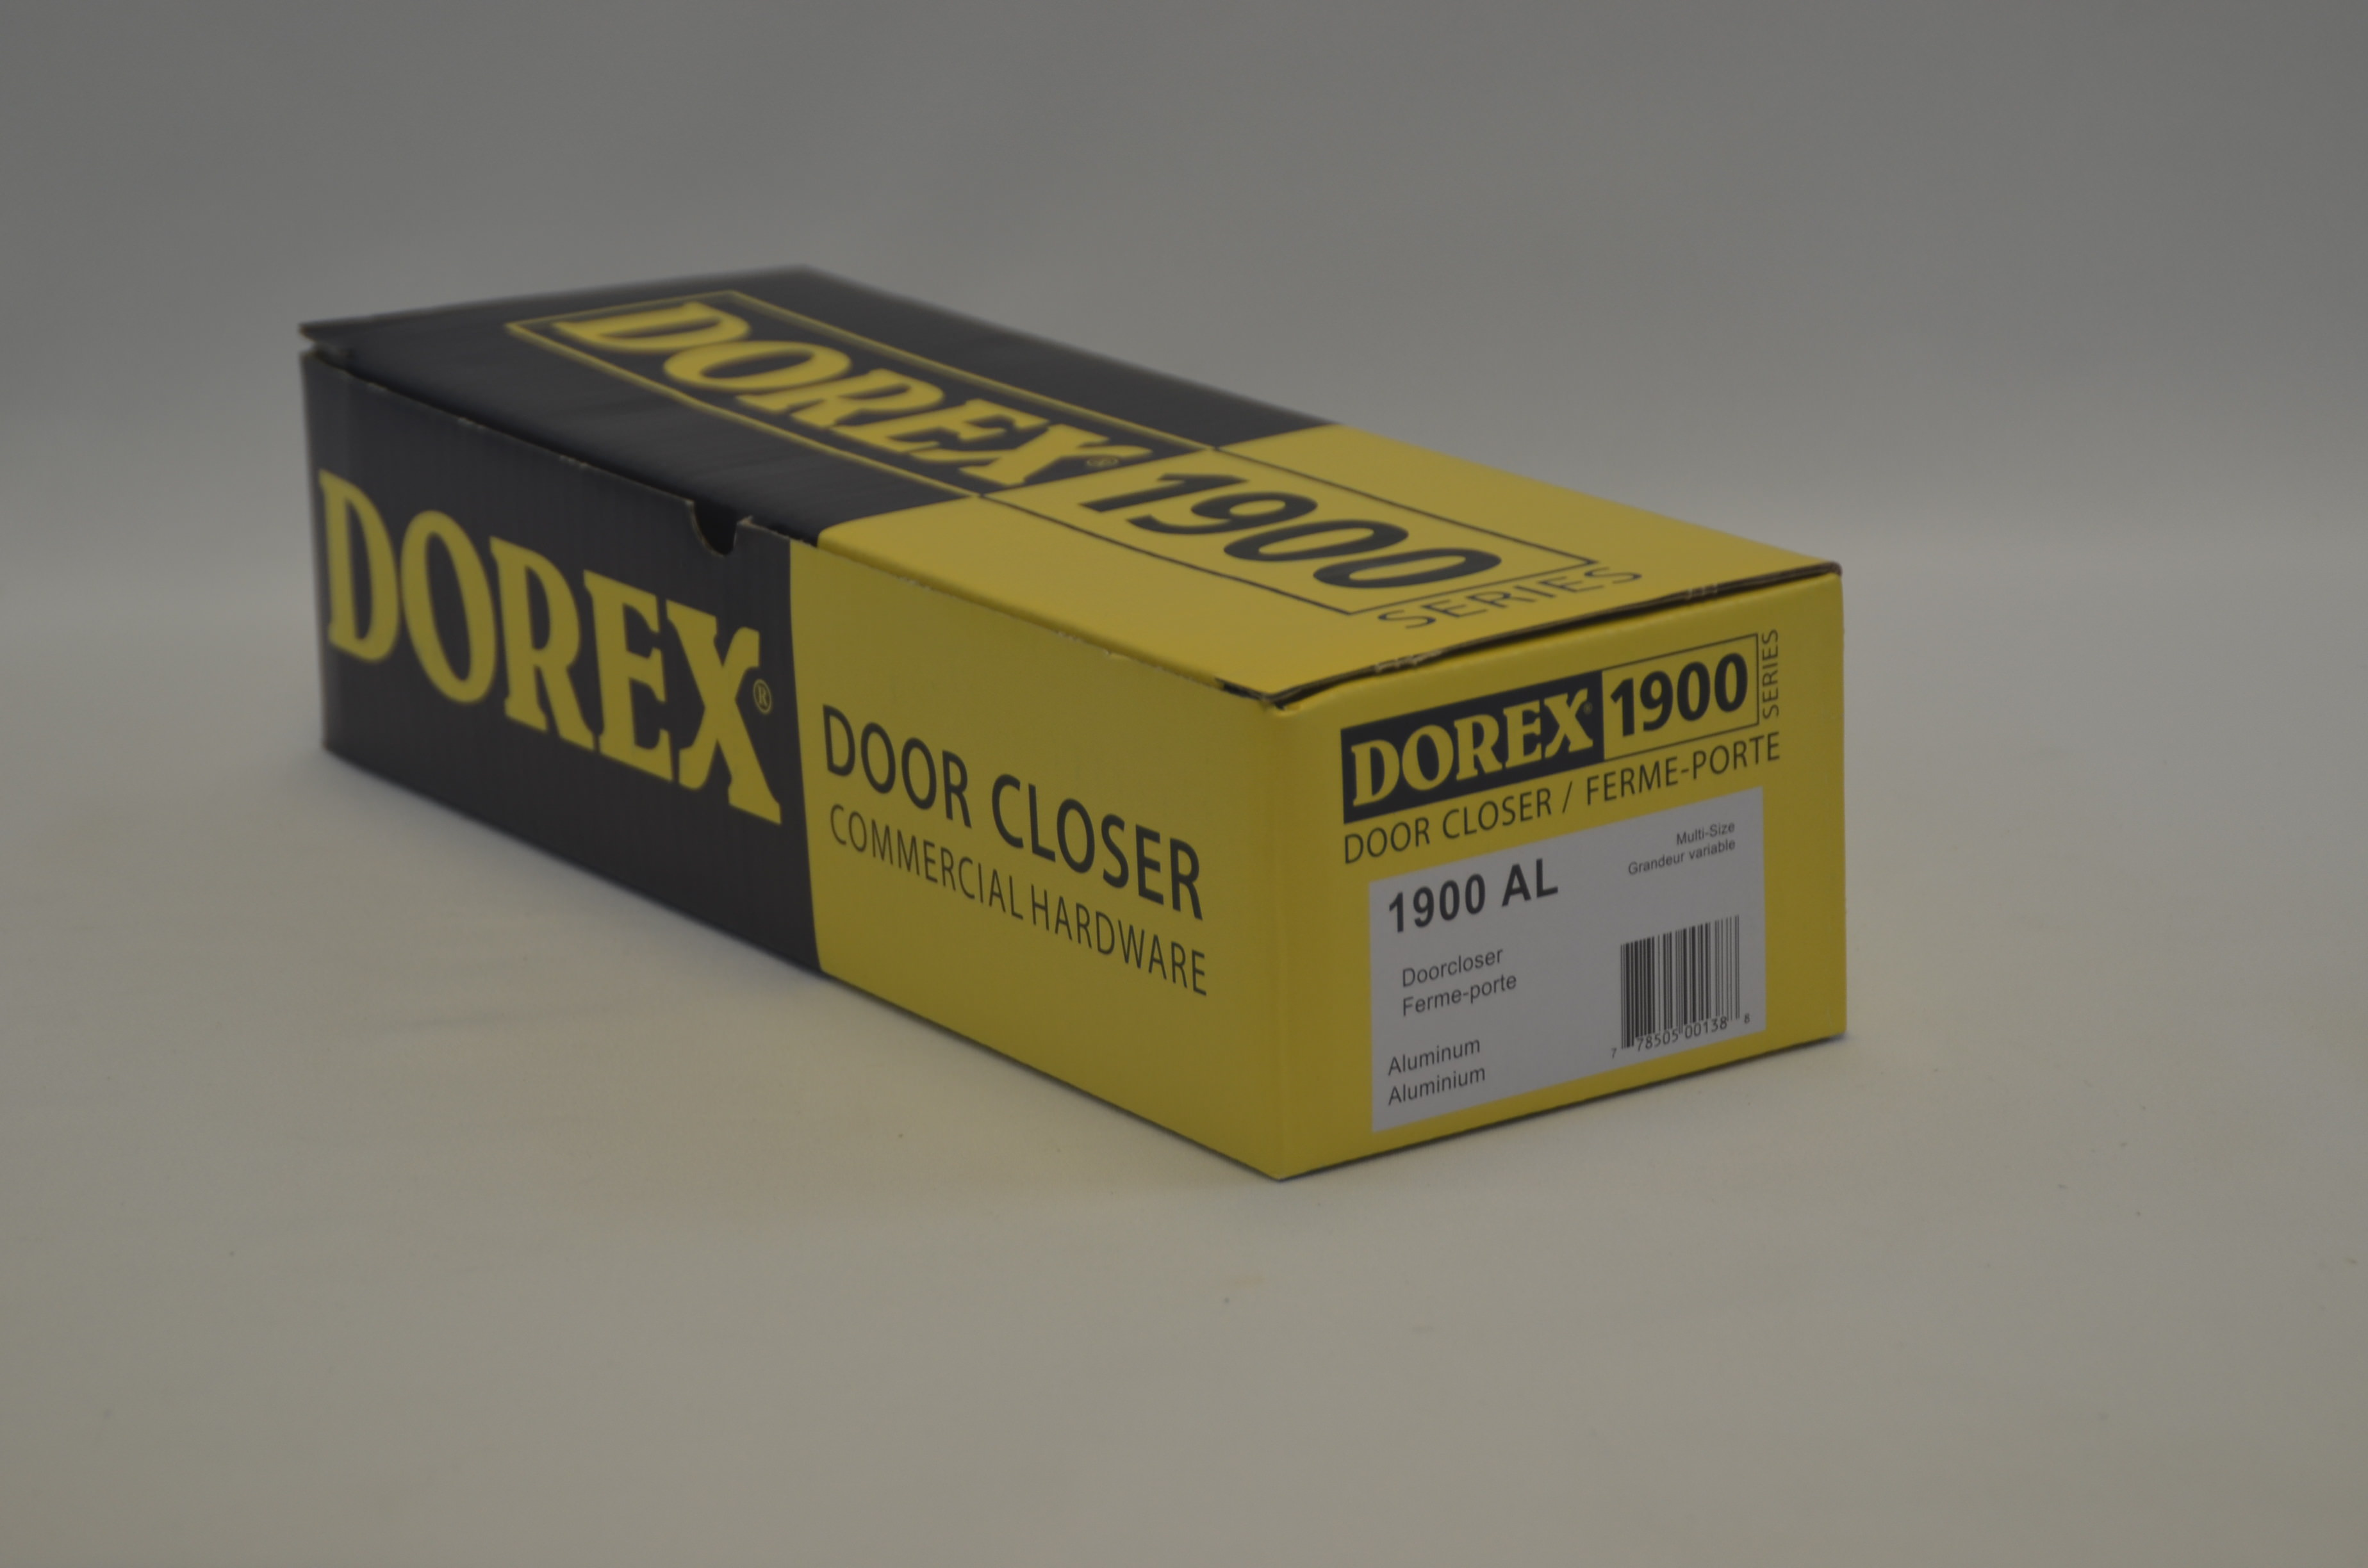 1900al Dorex Door Closer The Hardware Pro